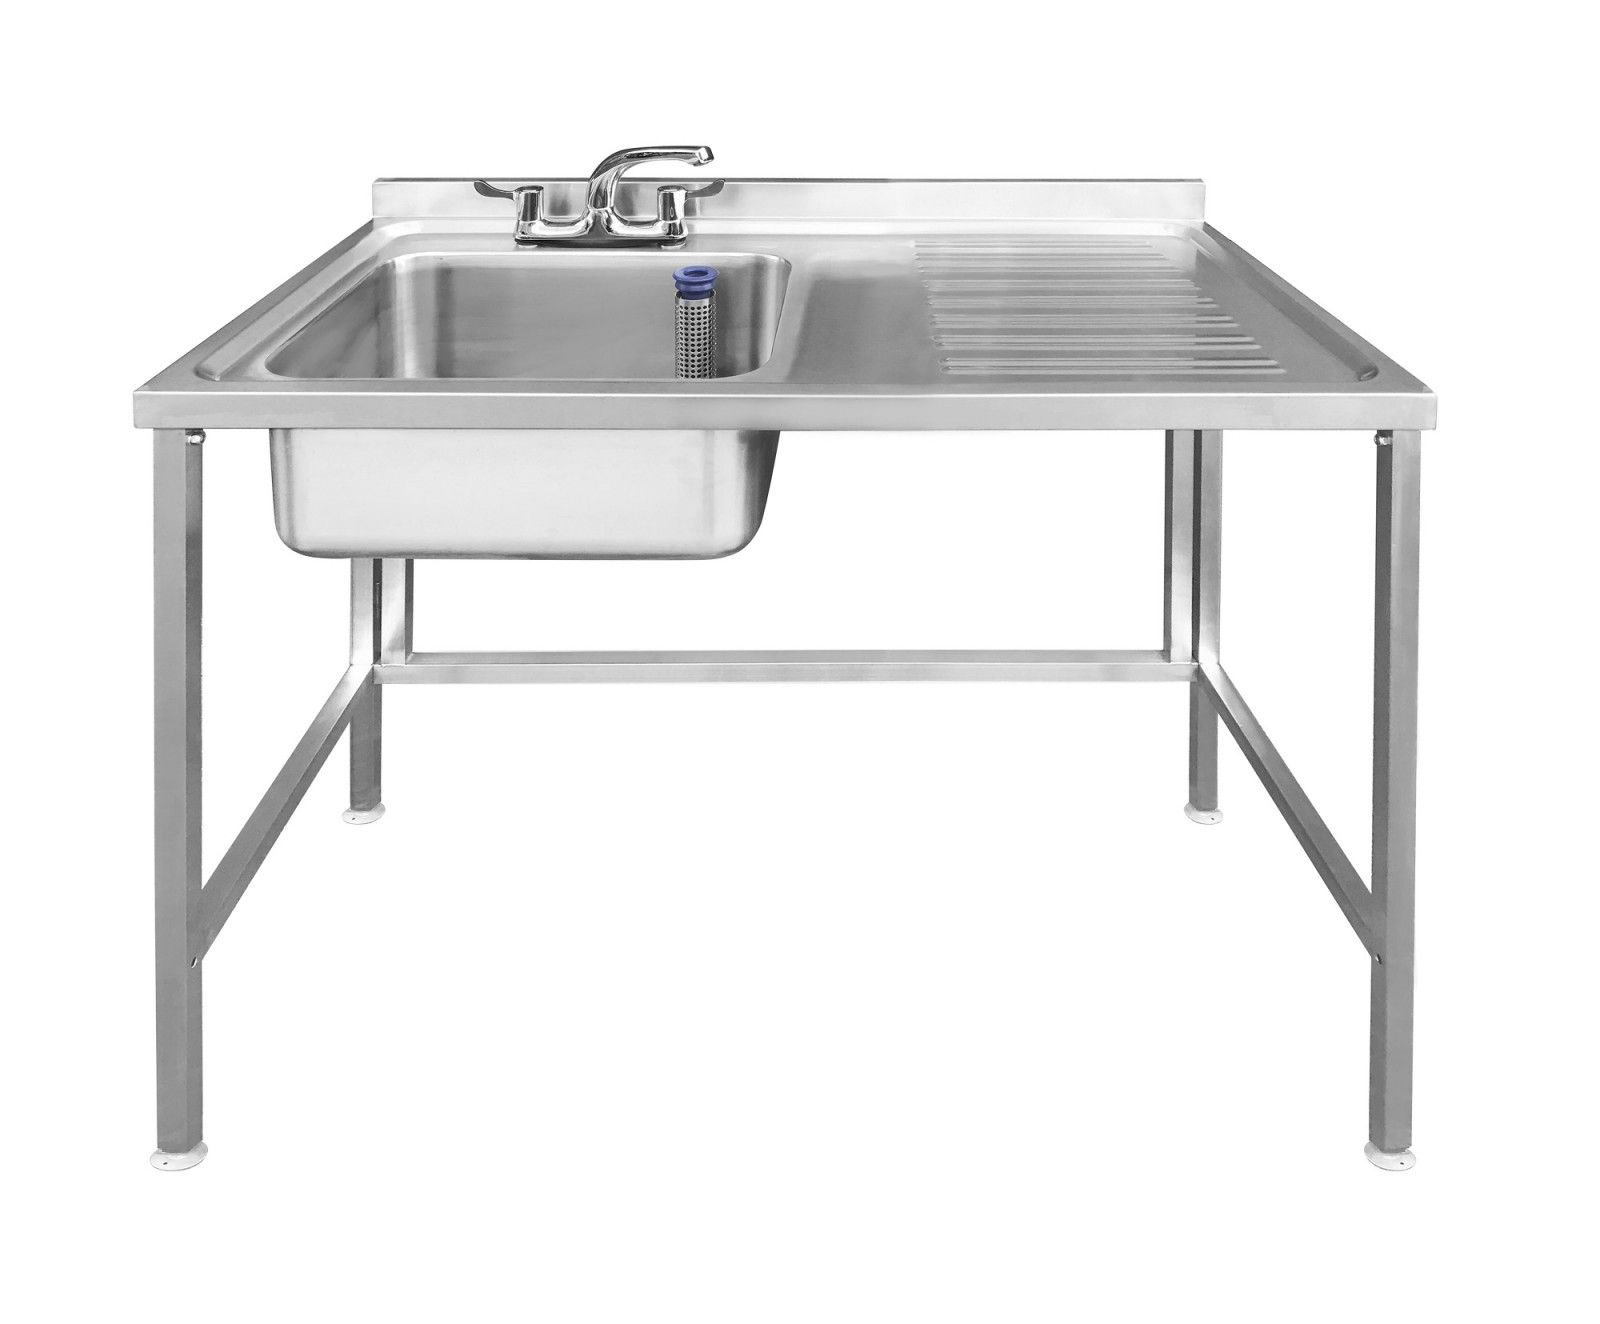 Stainless Steel Sink Right Hand Drainer 1200x600mm With Void